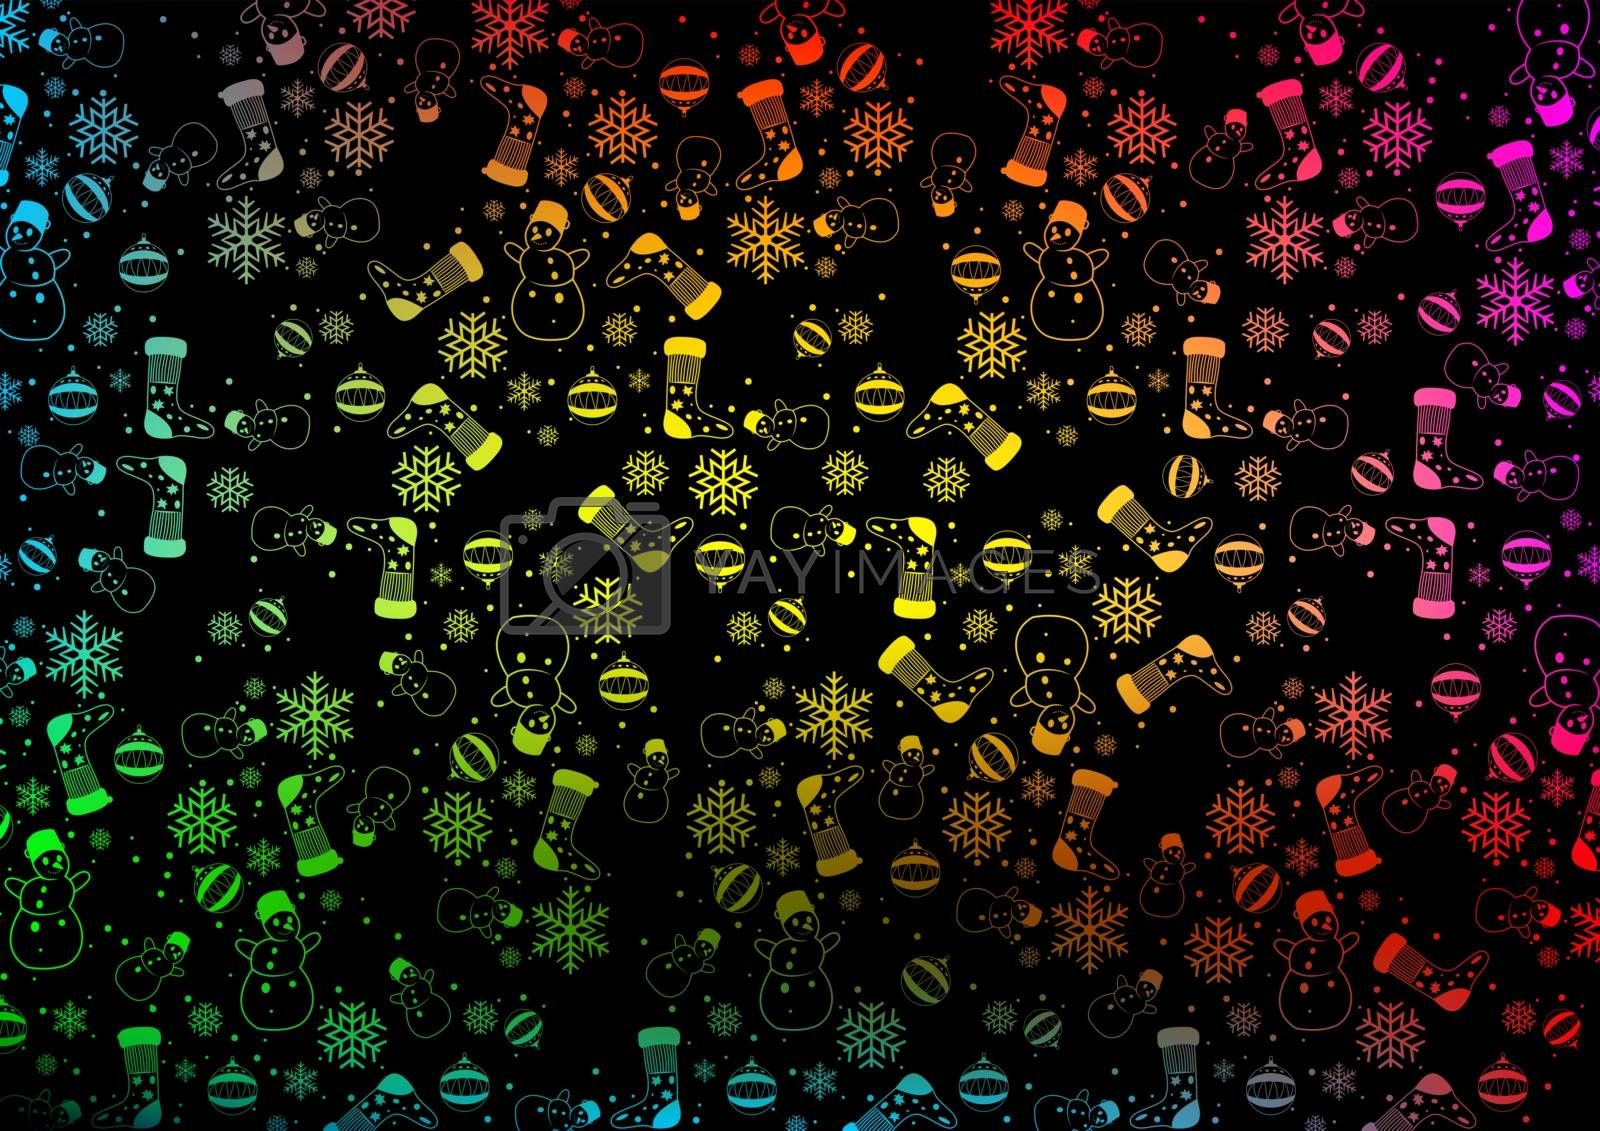 Colorful Christmas Background Texture with Outlined Ornaments - Illustration, Vector